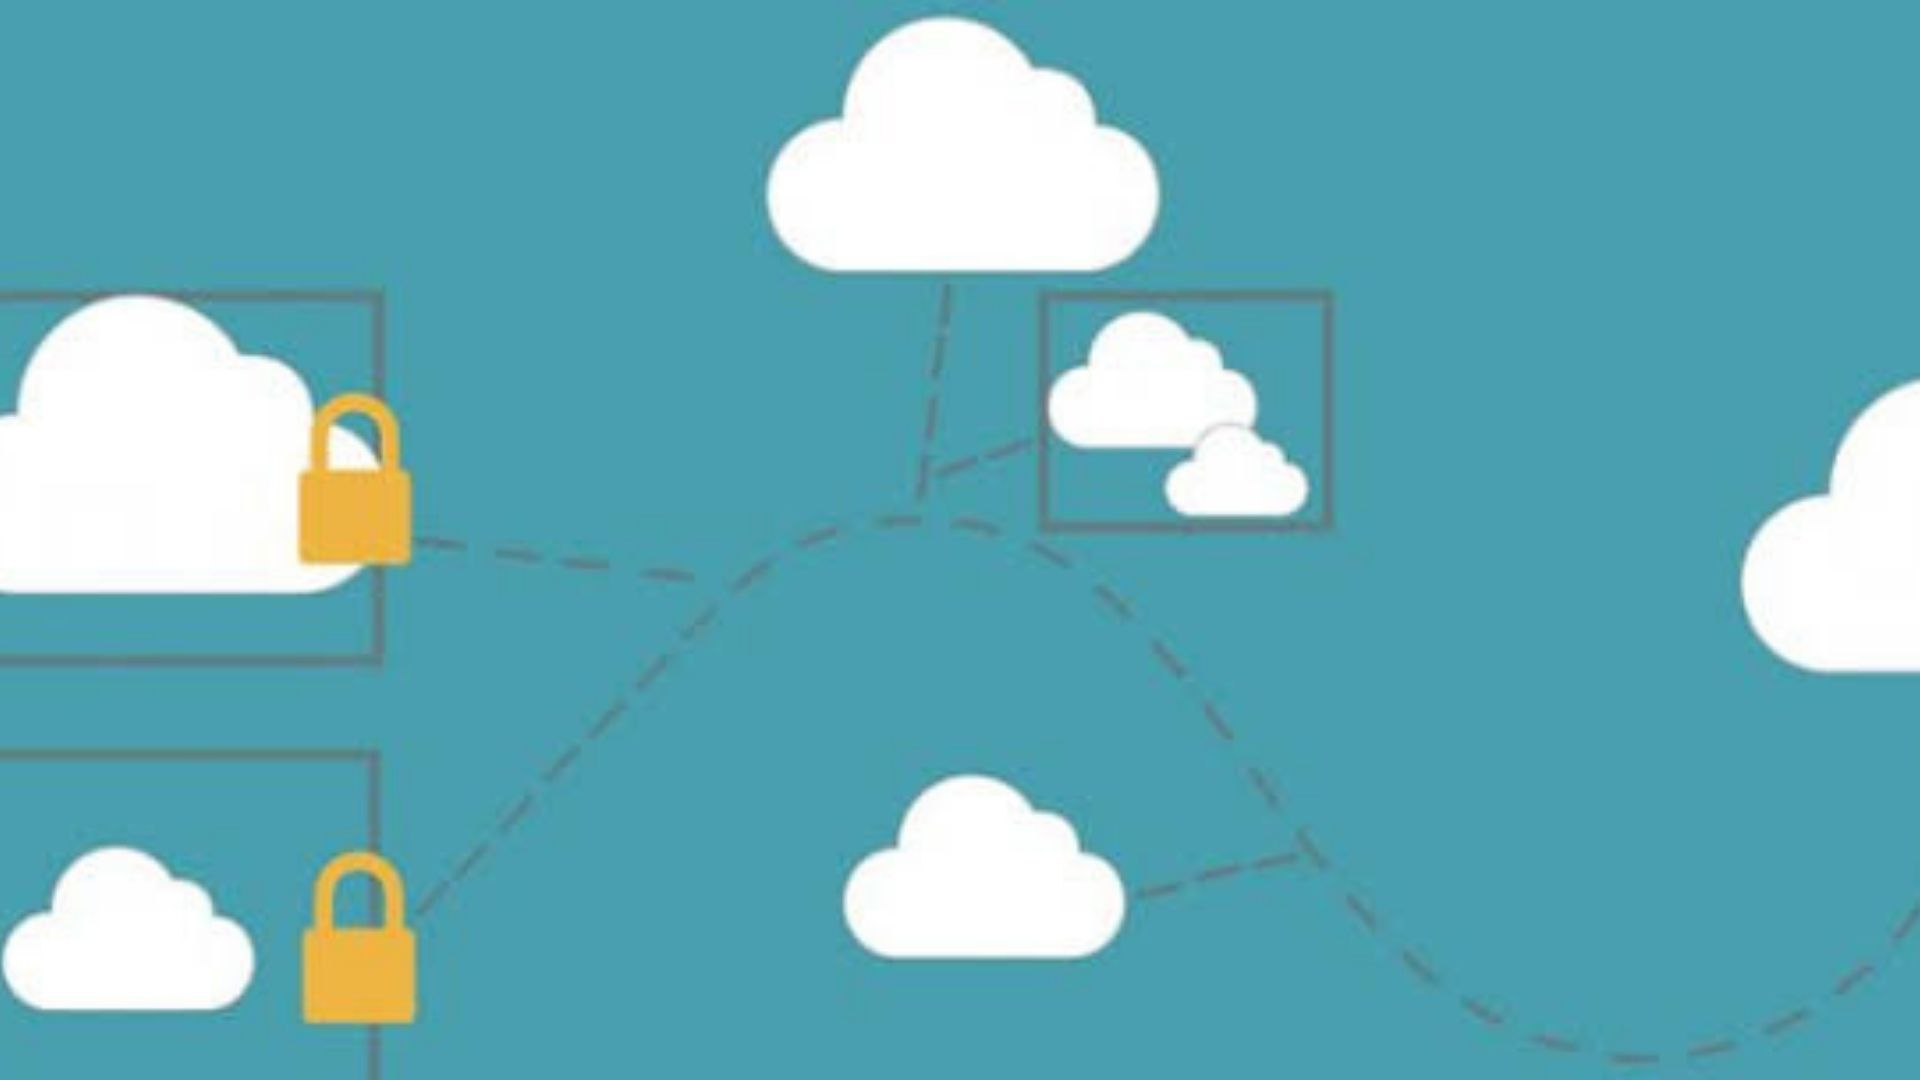 Multicloud: What Are The Benefits For Businesses?